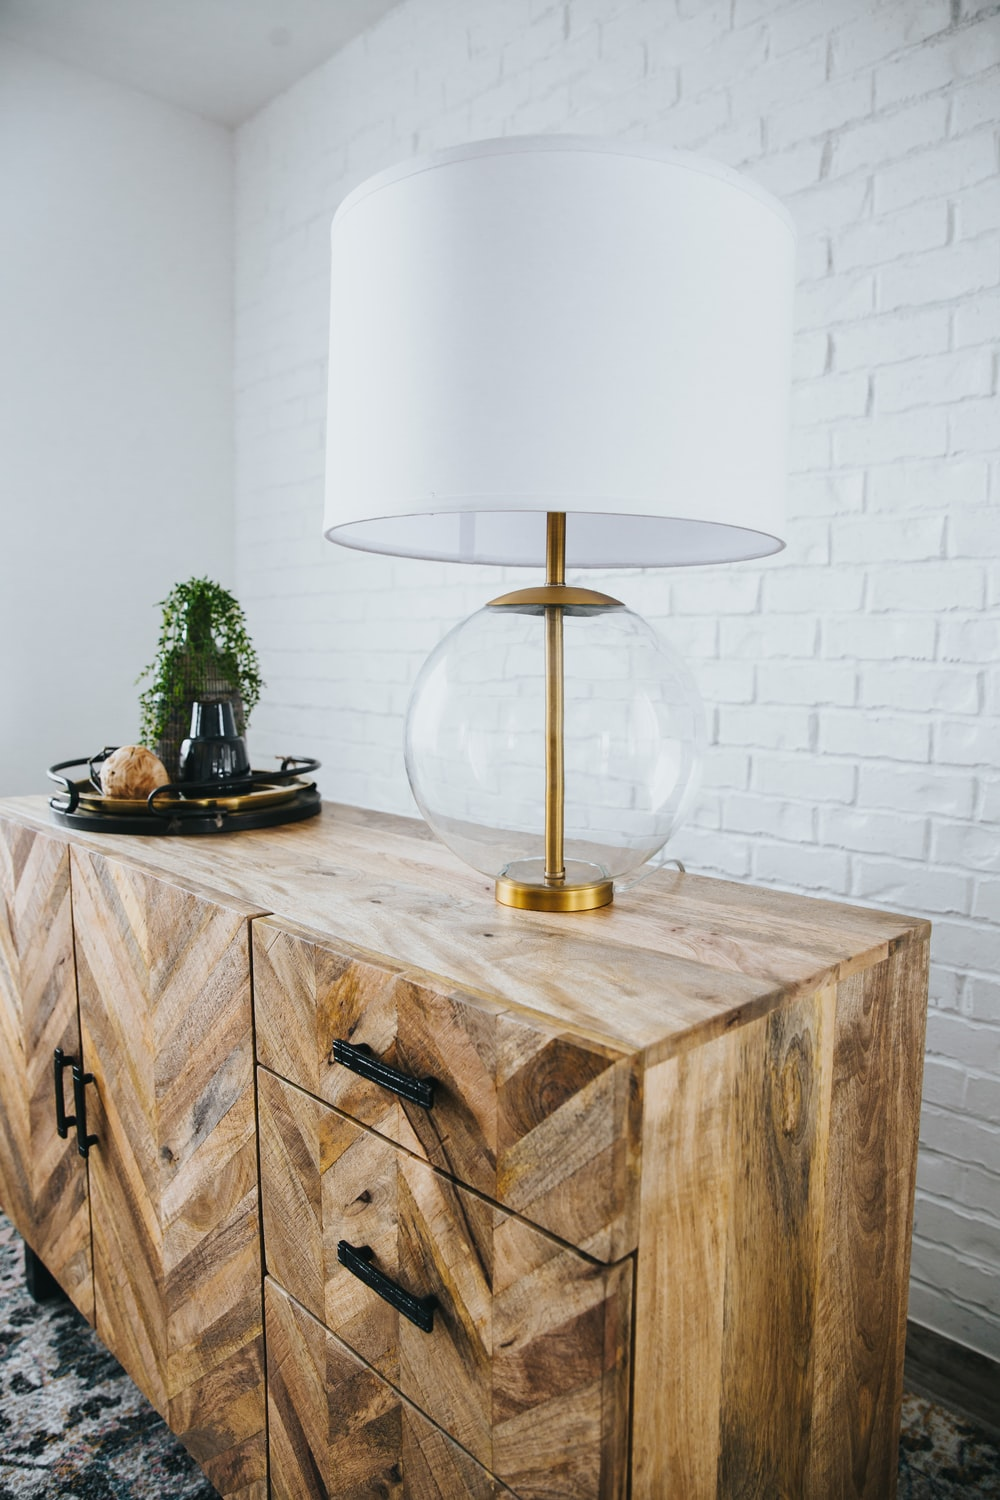 gold and white table lamp on brown wooden table